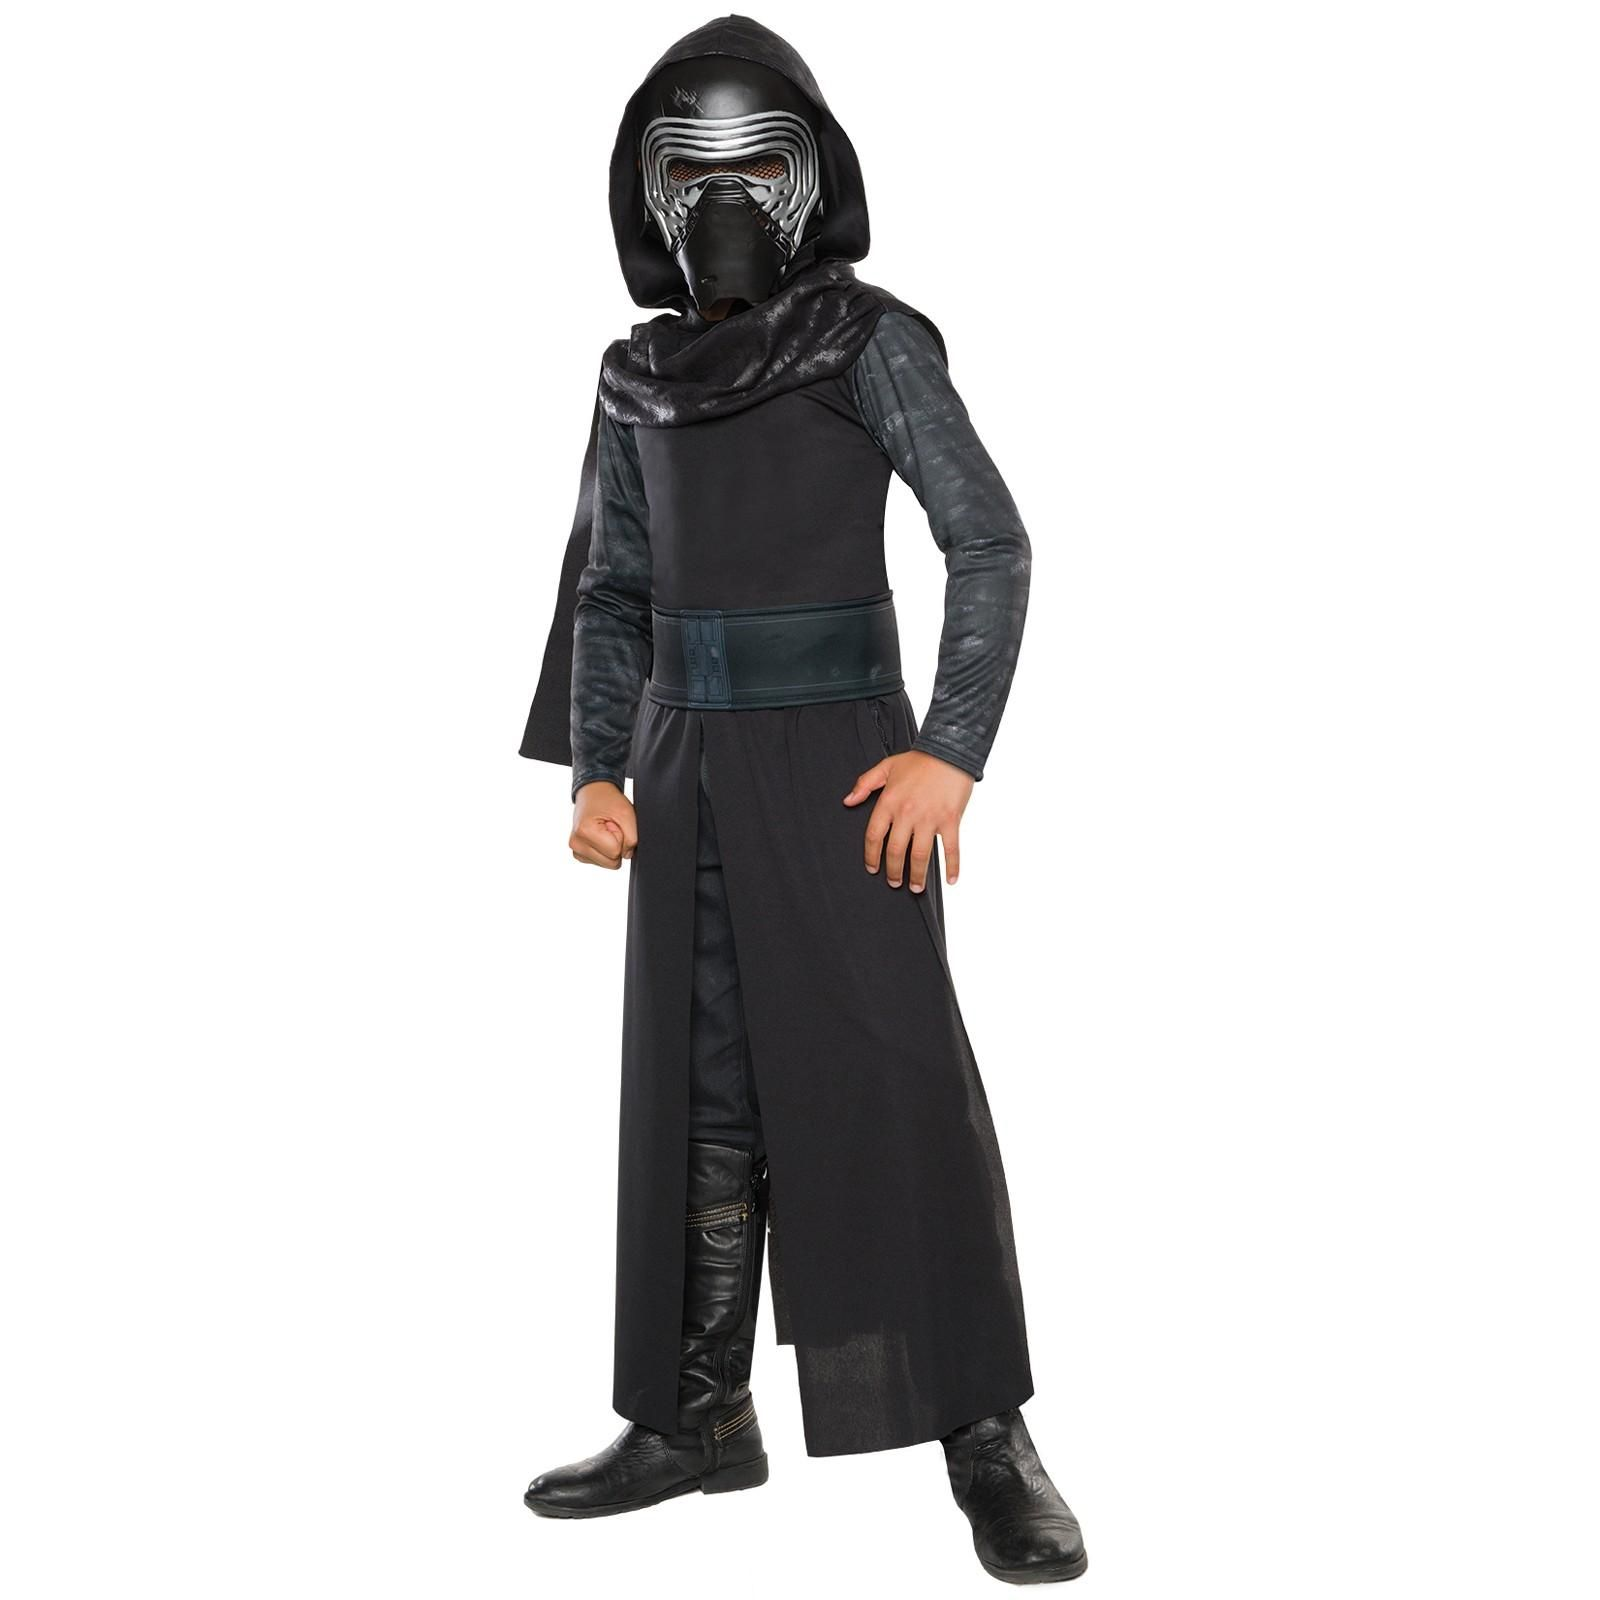 Your little dude will be one scary-looking Kylo Ren in this Boys ...